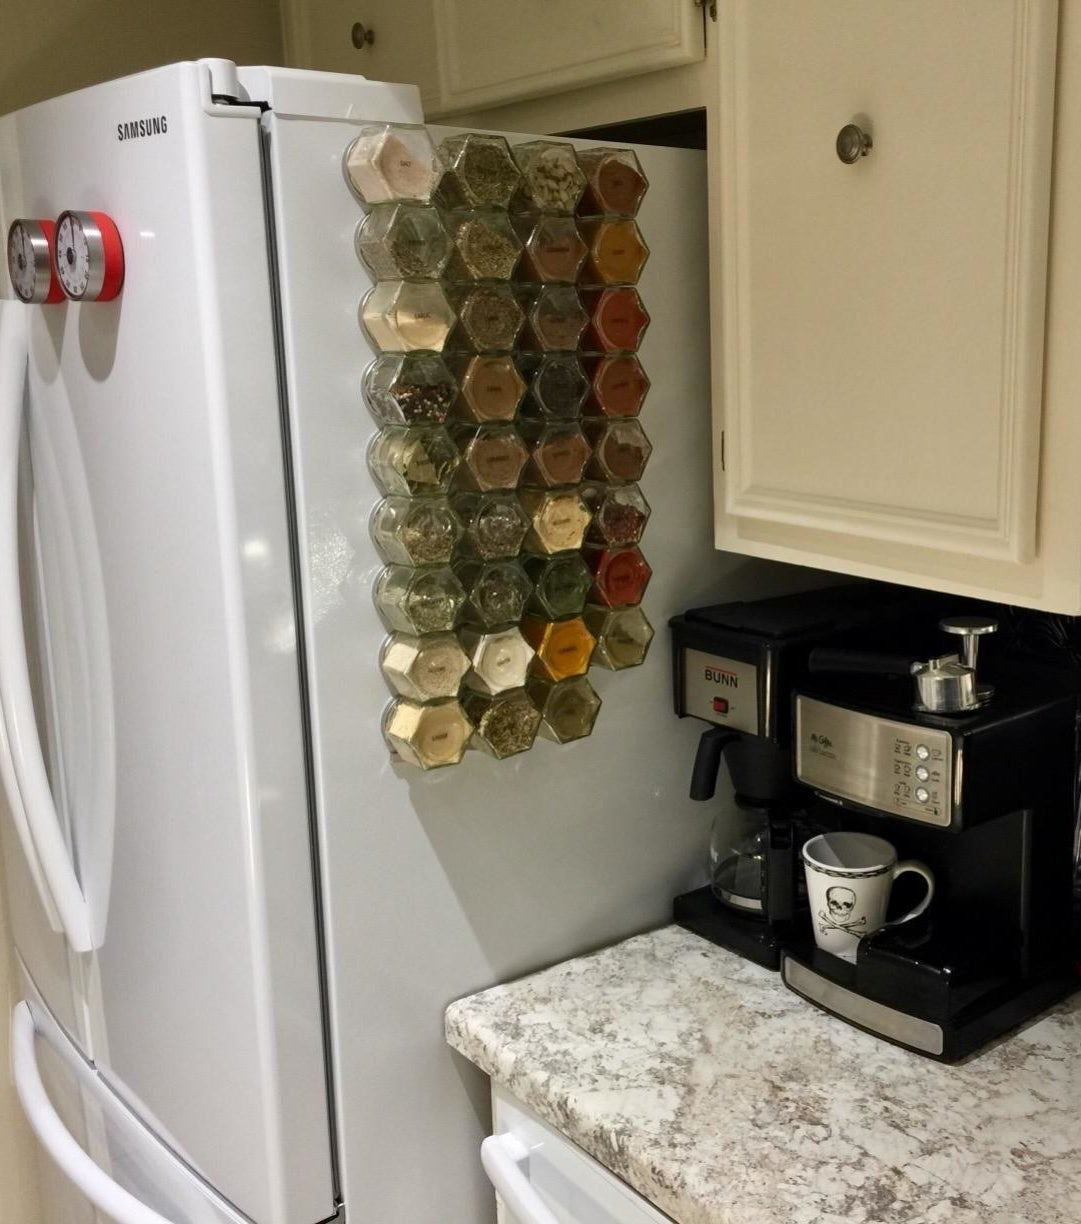 Reviewer pic of a number of glass spice jars stuck to the side of a fridge